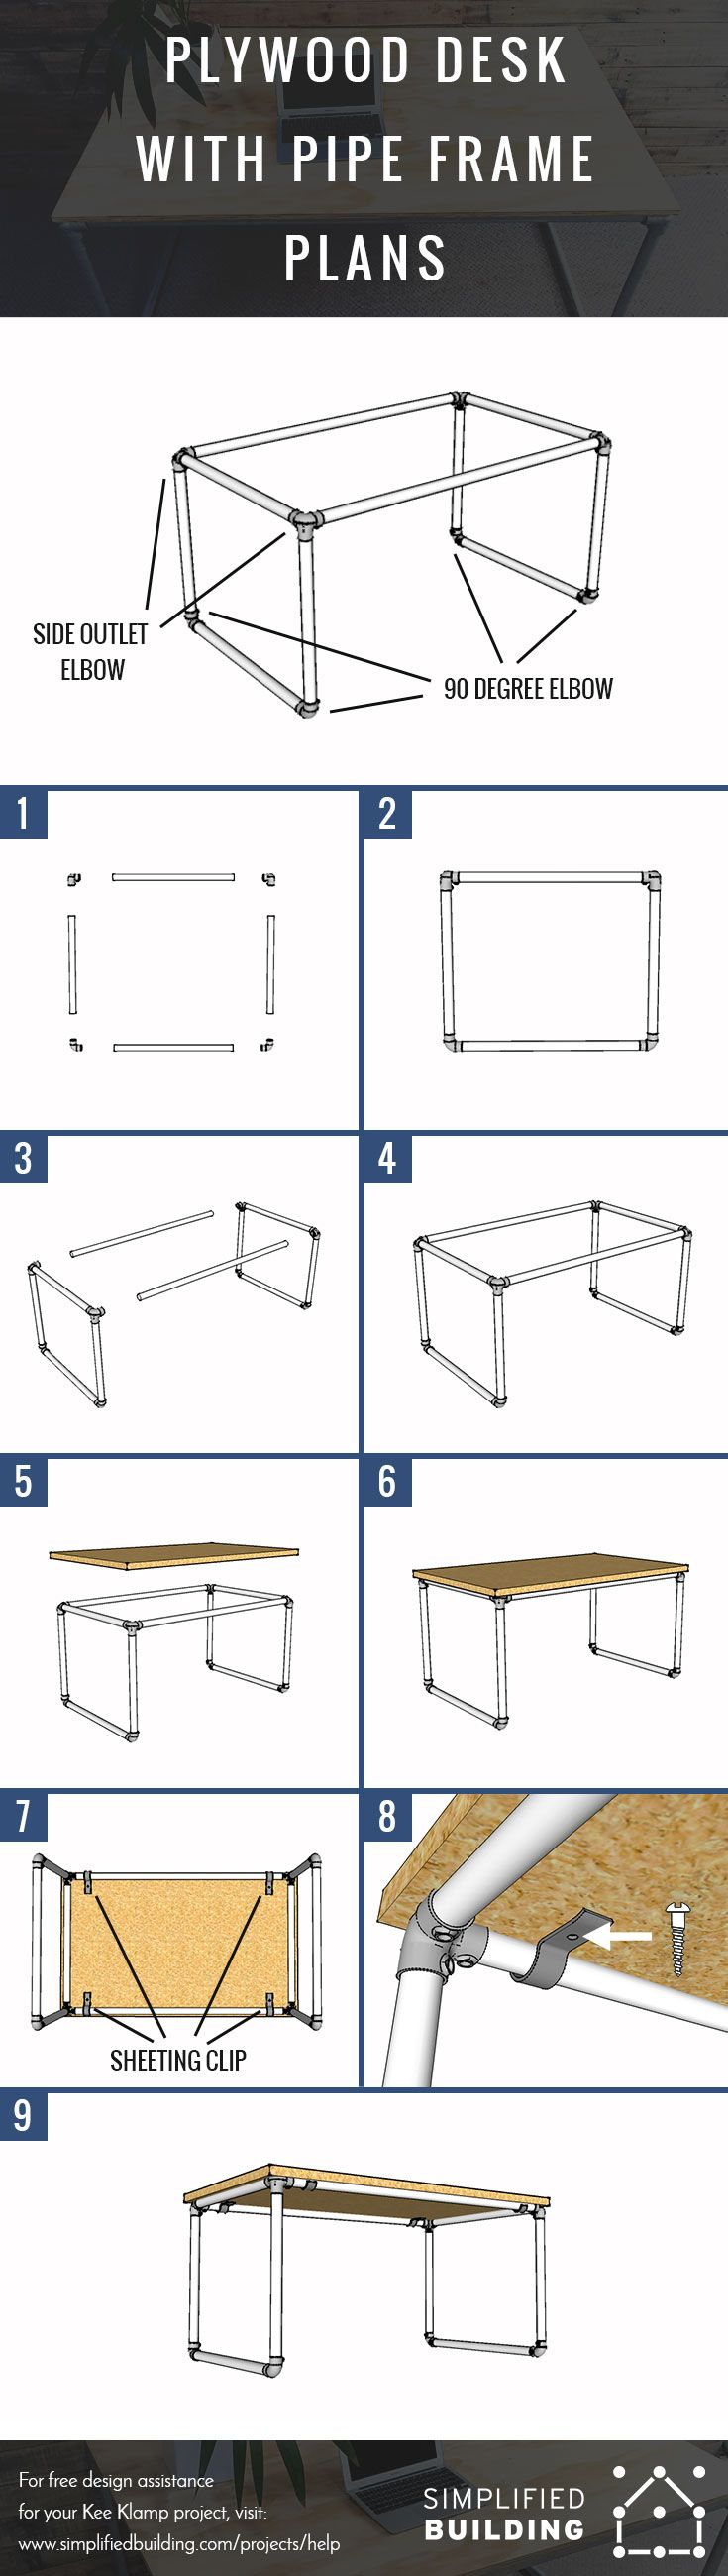 Plywood Desk with Pipe Frame Plans  #KeeKlamp #DIY #pipedesk #pipefurniture